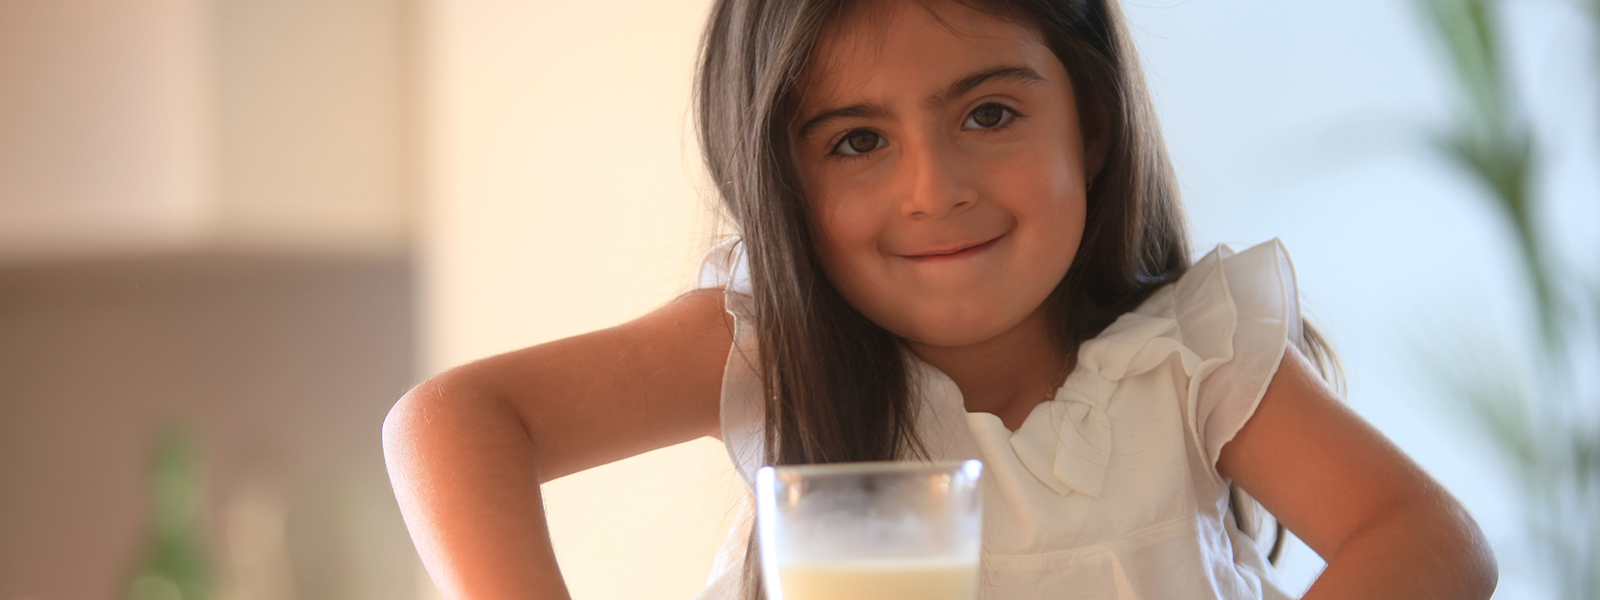 /Files/Images/Emborg/1600x600_emborg-video/emborg-fresh-natural-milk-film-foto-1600x600.jpg